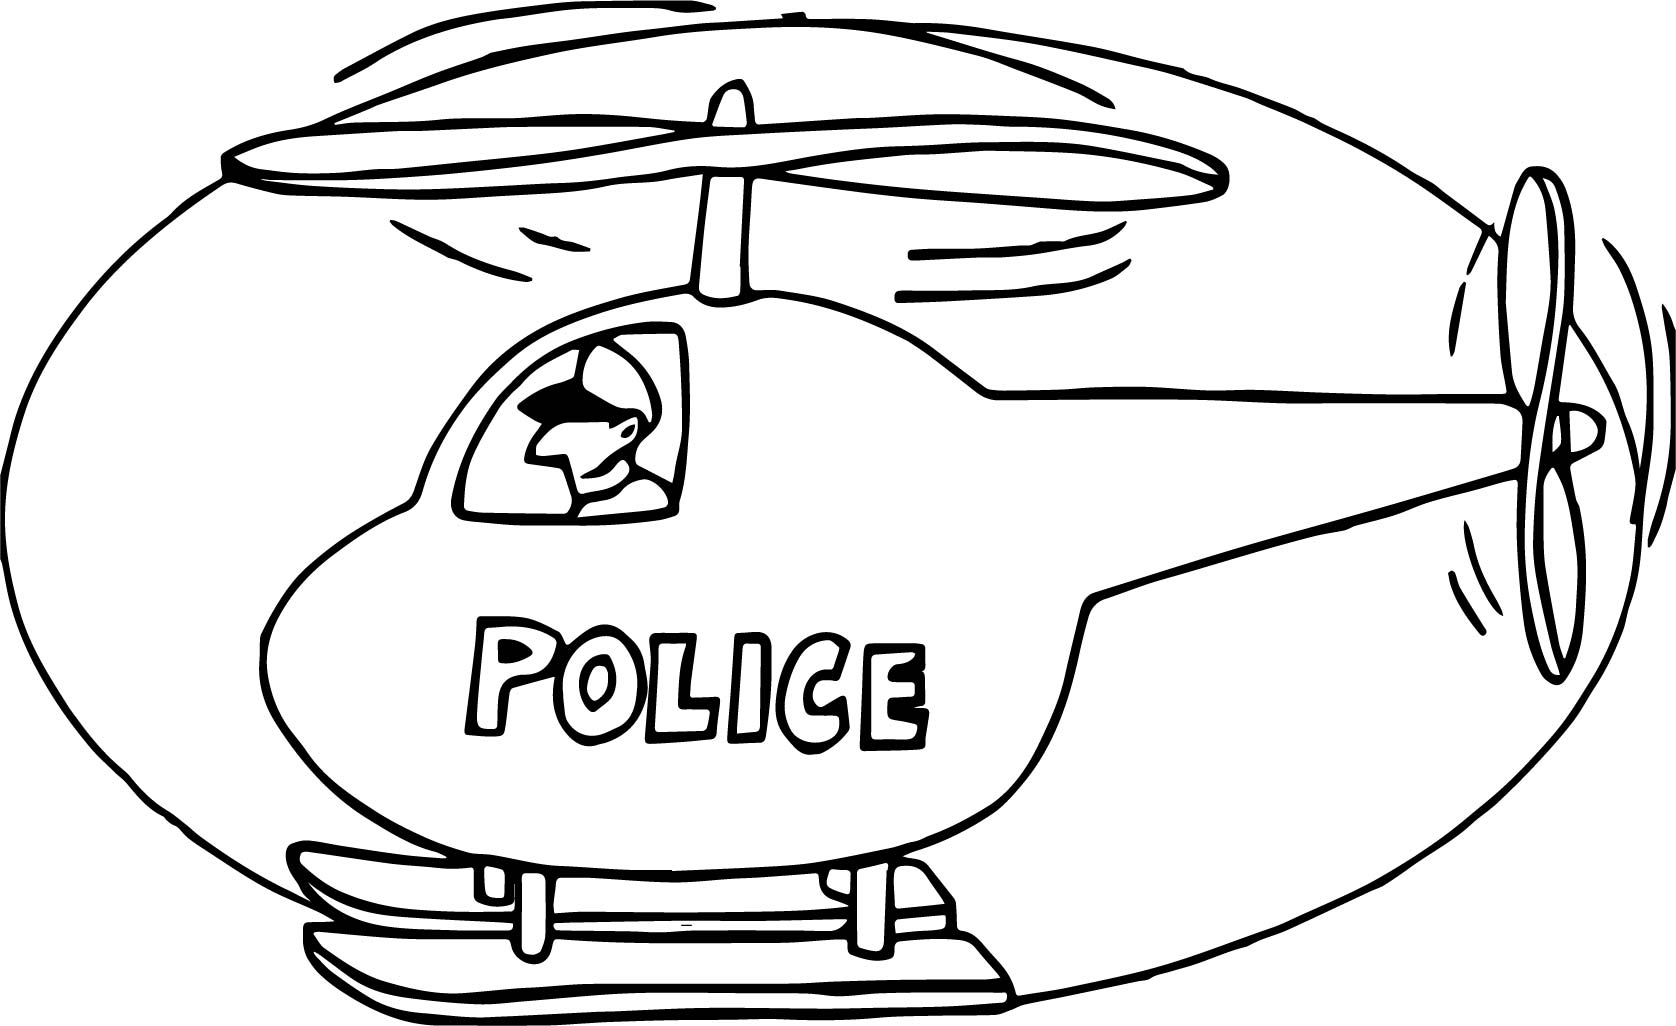 Police Helicopter Coloring Page Wecoloringpage